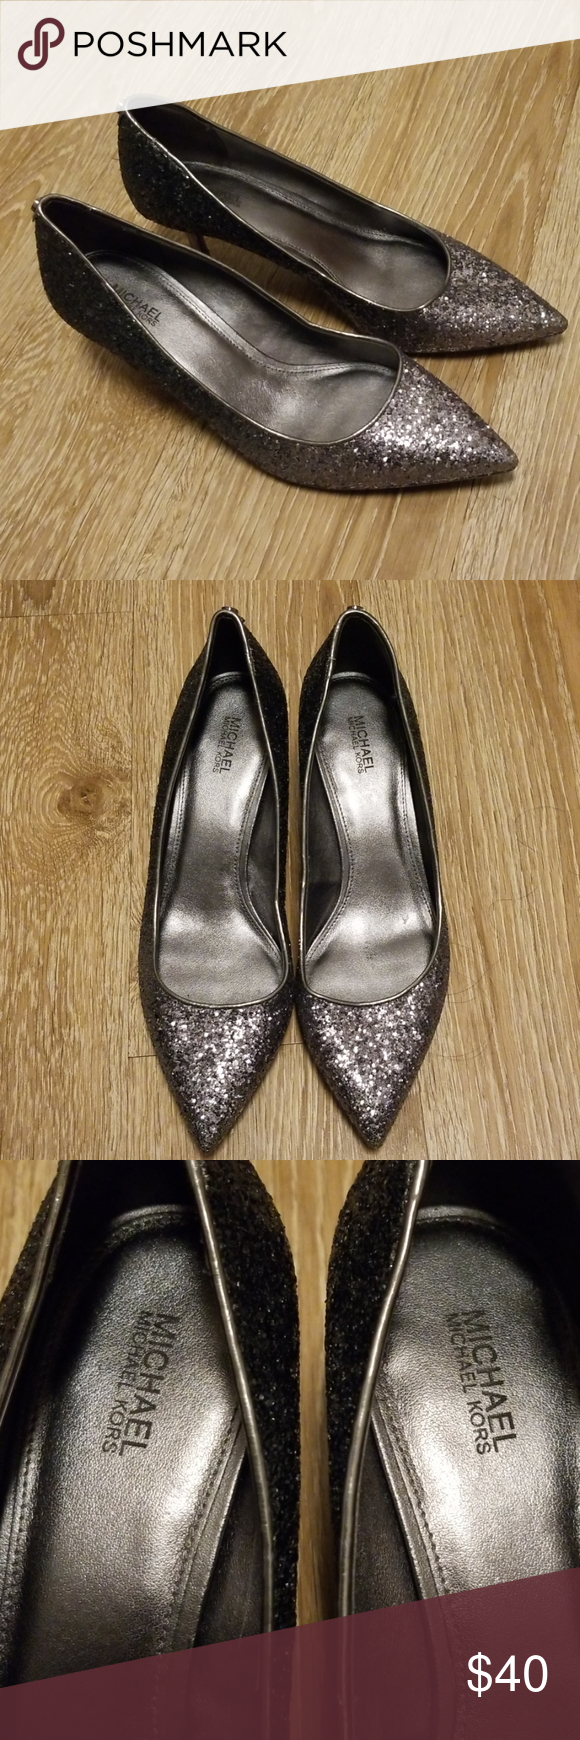 Michael Kors Silver Glitter Pumps Gunmetal In 2020 With Images Silver Glitter Pumps Glitter Pumps Michael Kors Silver